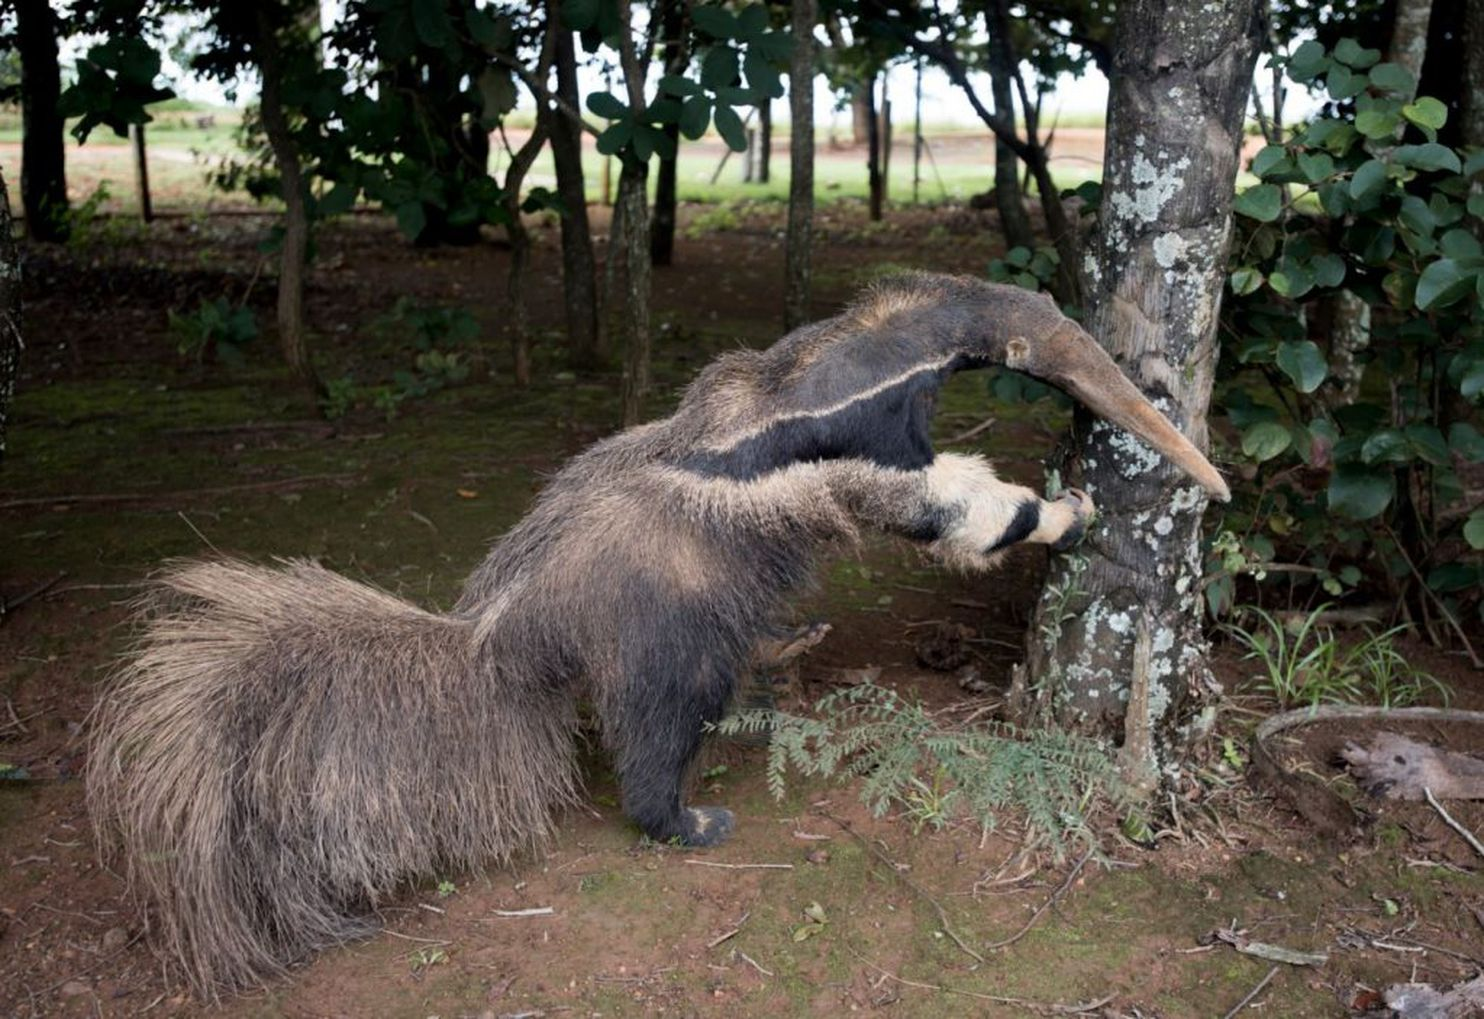 <div>There's Something Very Wrong With This Award-Winning Anteater Photo</div>